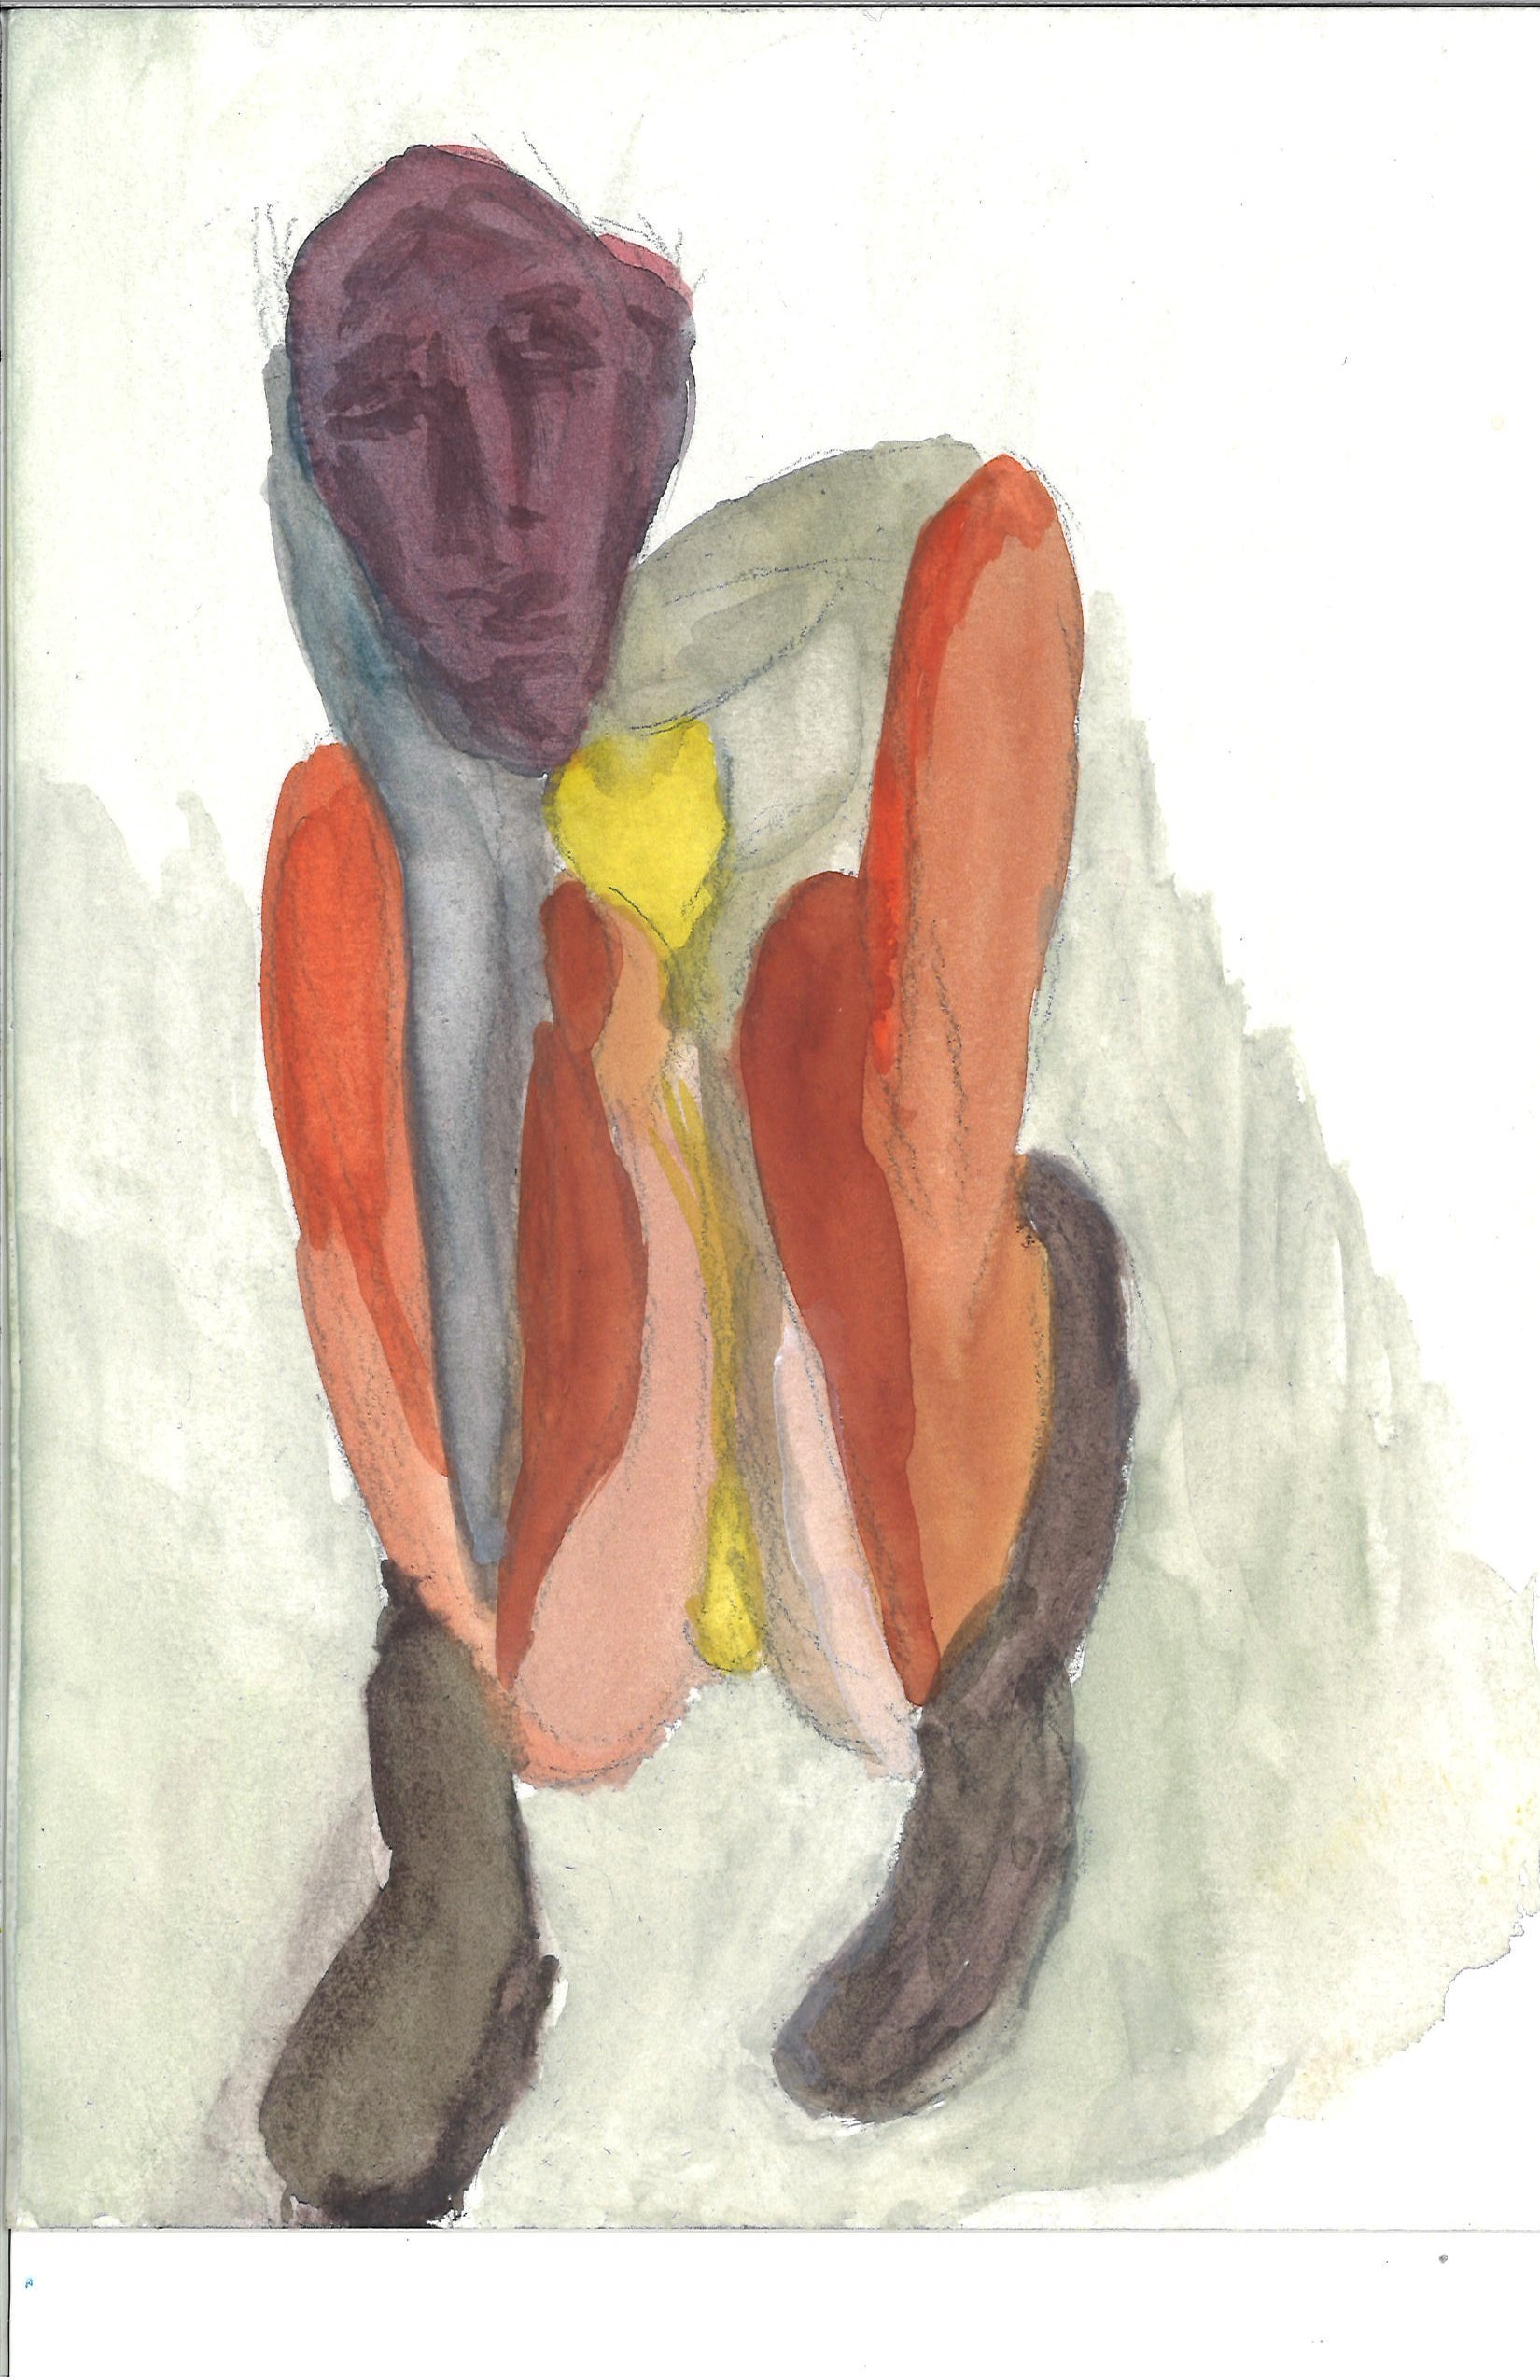 Boots, yellow crotch, yellow heart - watercolor by William Eaton, 2019